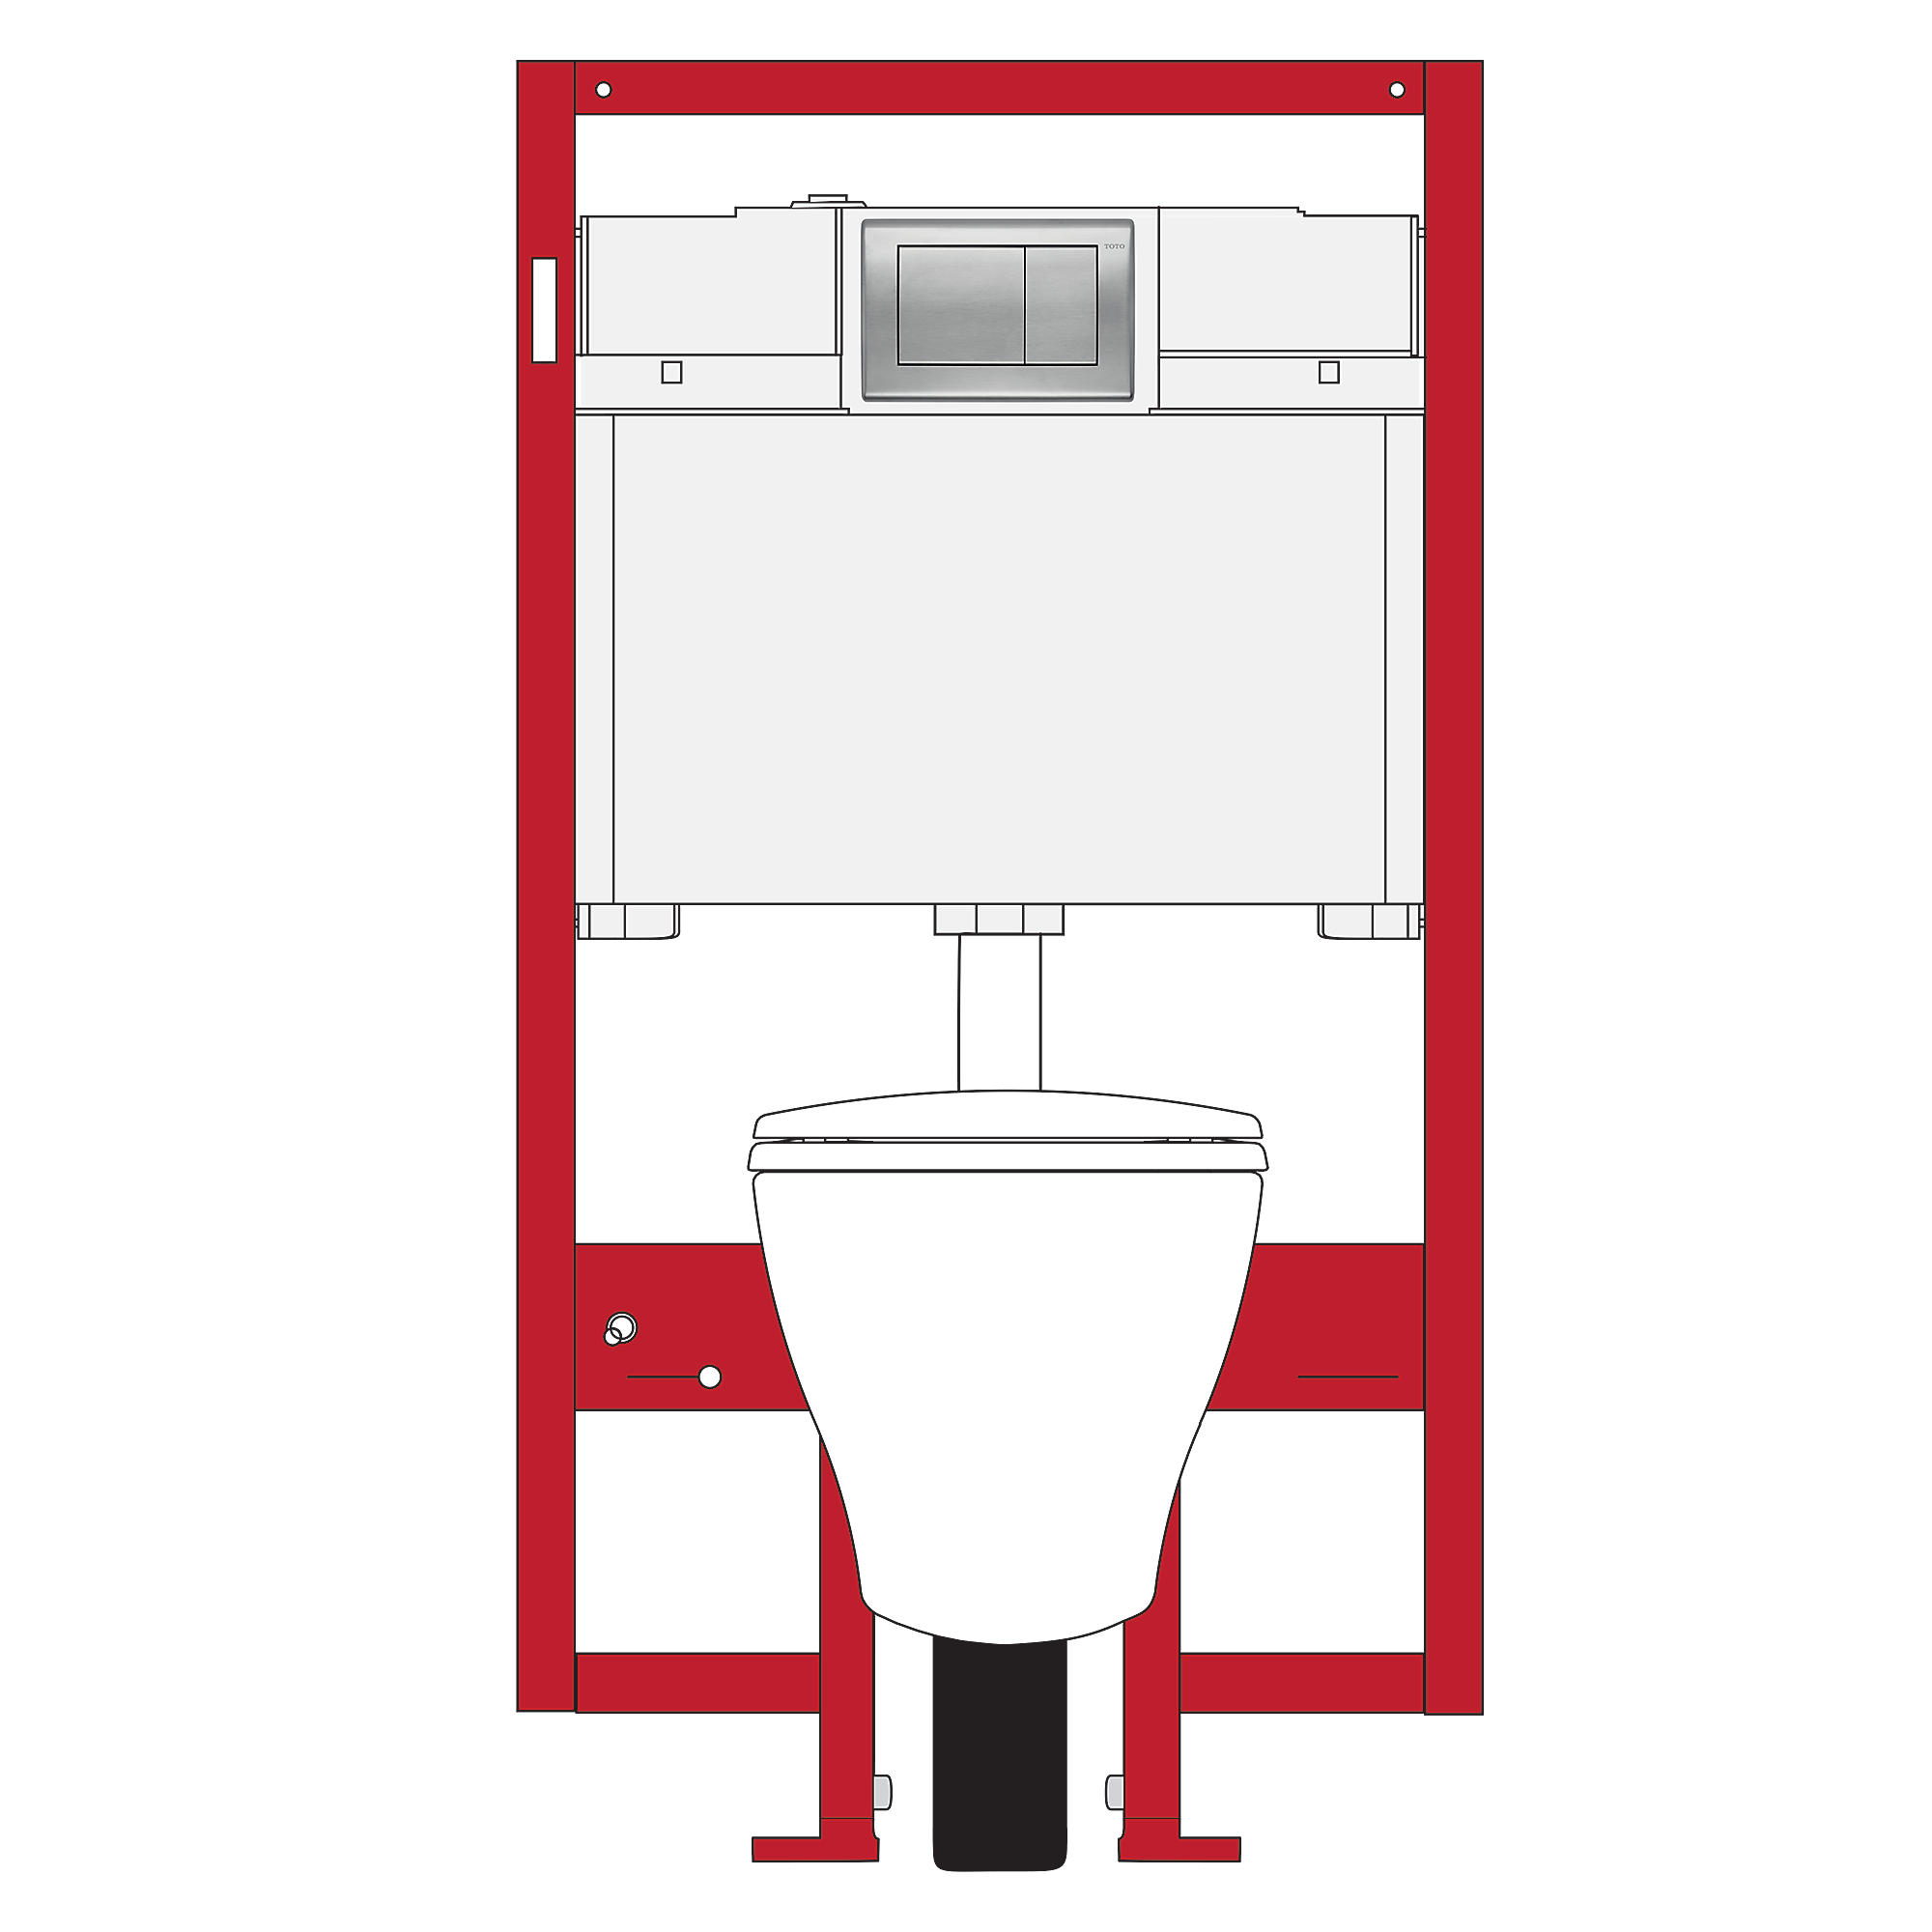 Cwt418mfg 1 01 aquia  wall hung toilet   duofit  in wall tank system  1 6 gpf   0 9 gpf  elongated bowl 0